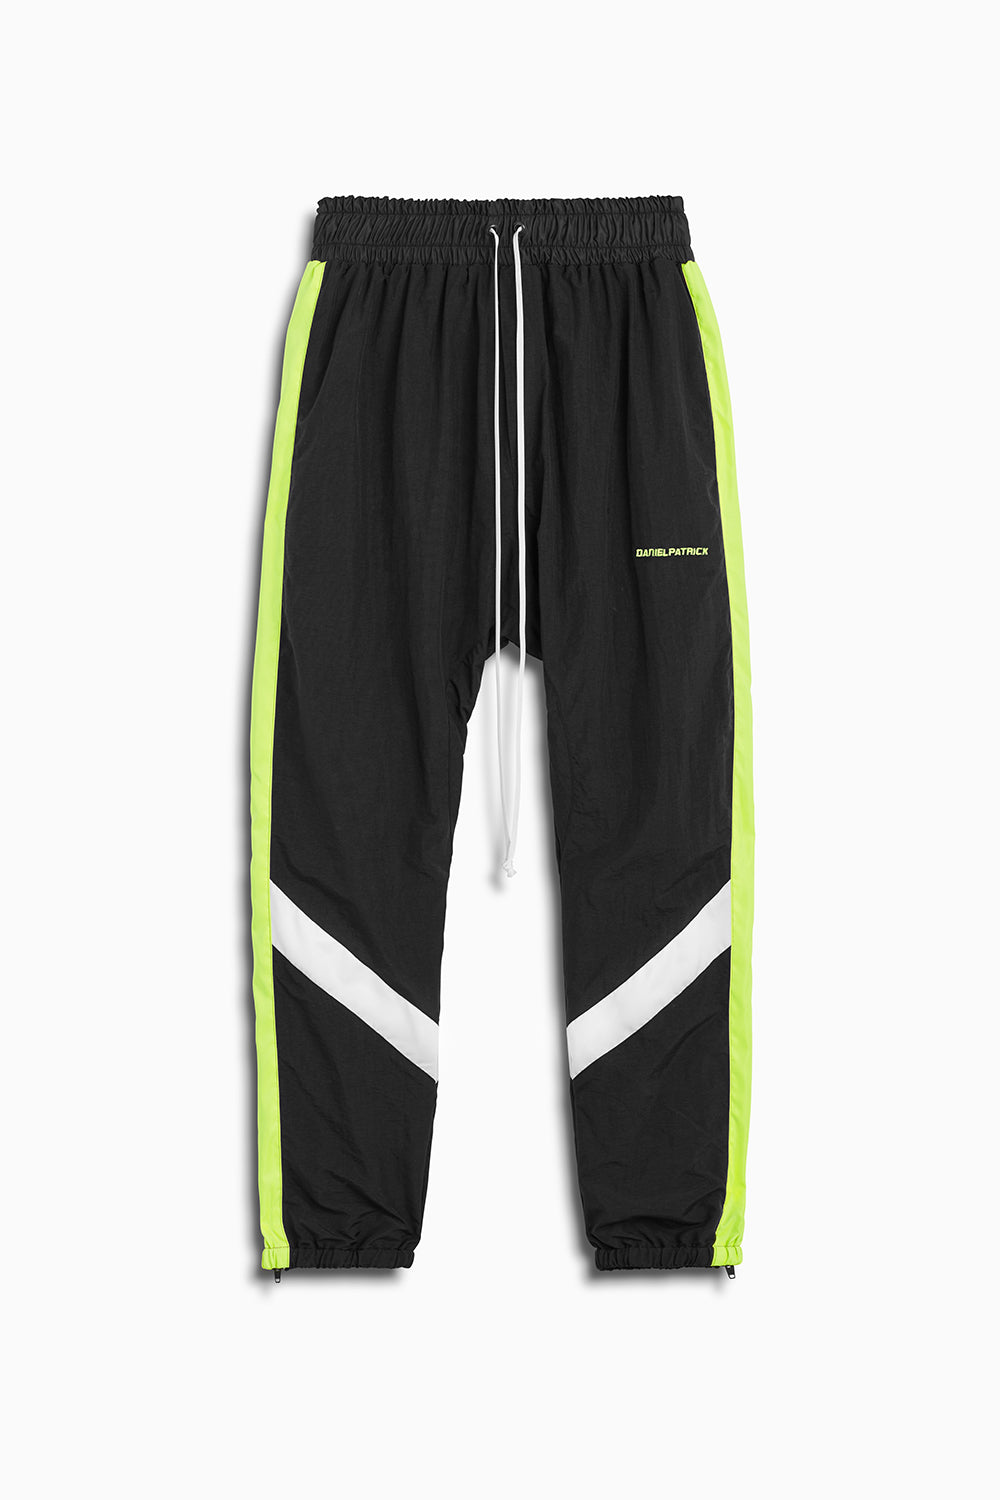 2019 parachute track pant in black/citrus lime/ivory by daniel patrick